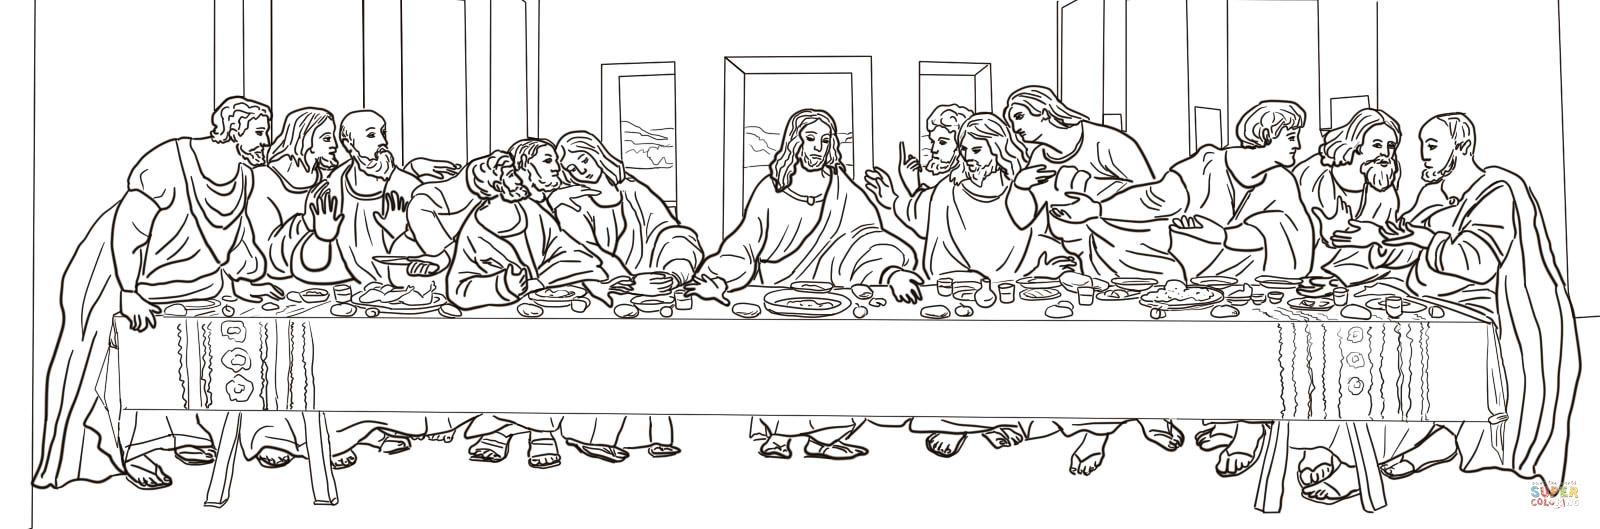 The Last Supper Coloring Page Last Supper Coloring Pages Jesus Coloring Pages